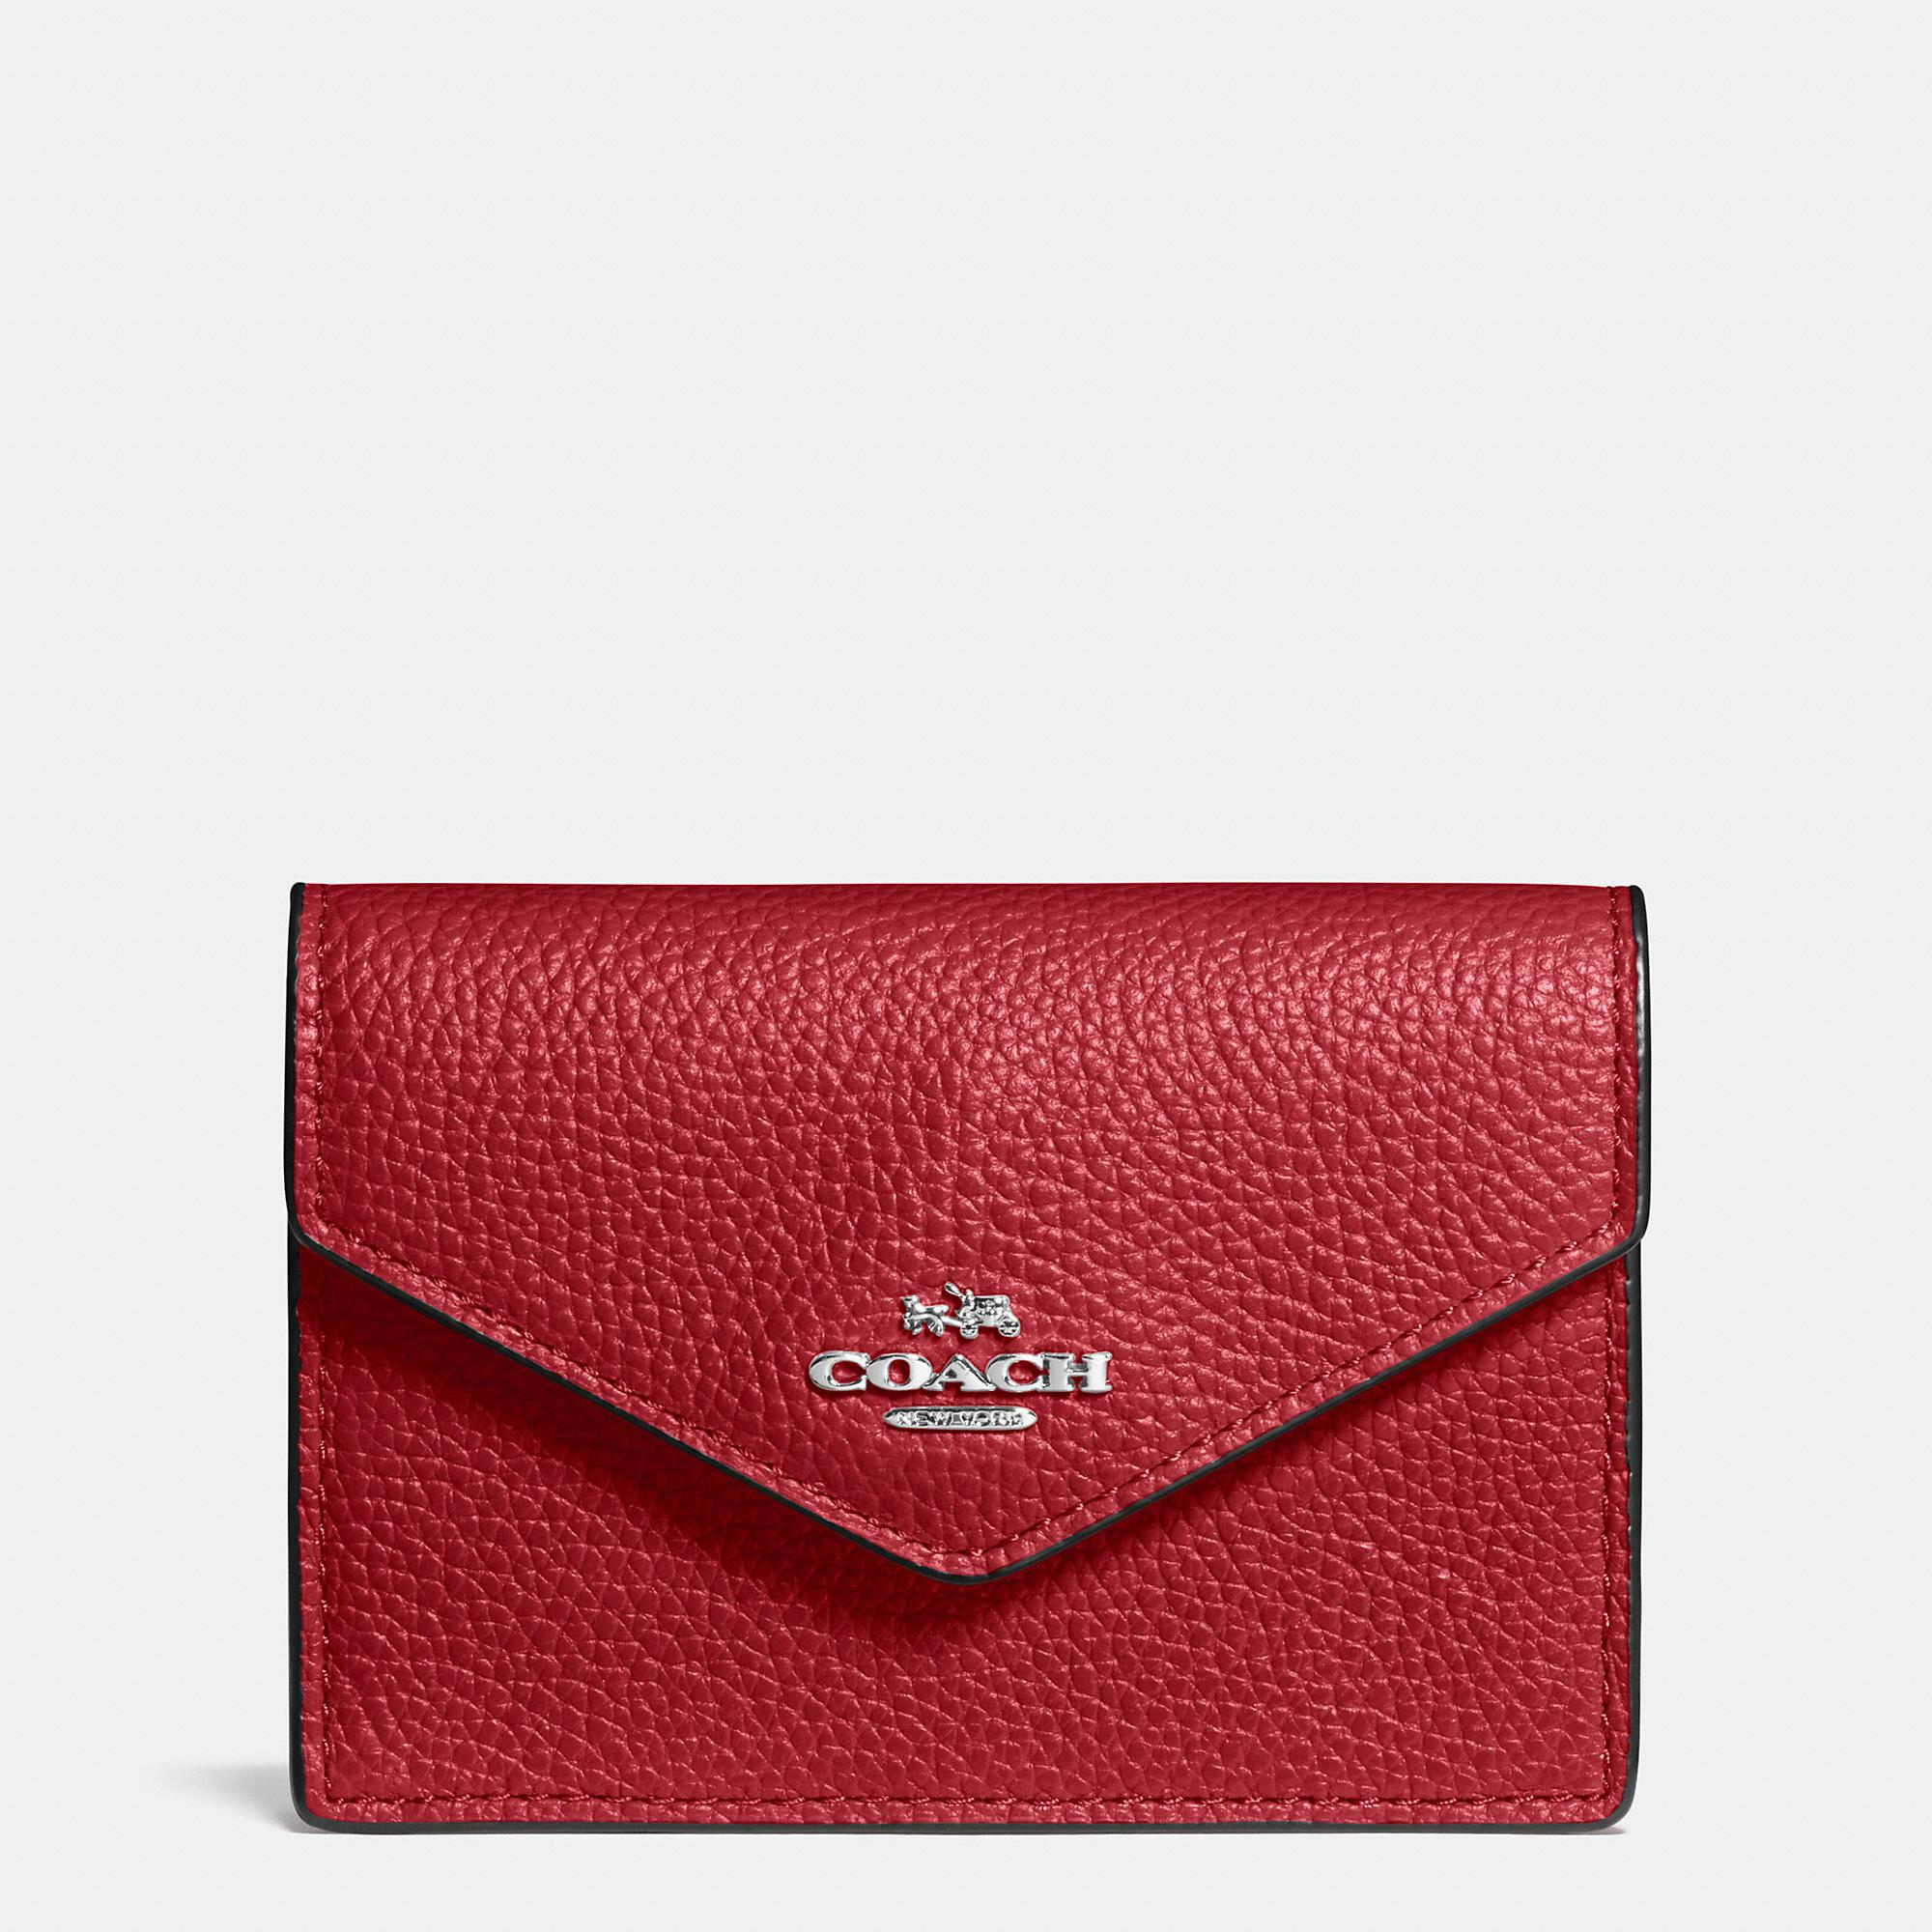 99f2b4b947b7 Lyst - COACH Envelope Card Case In Polished Pebble Leather in Red